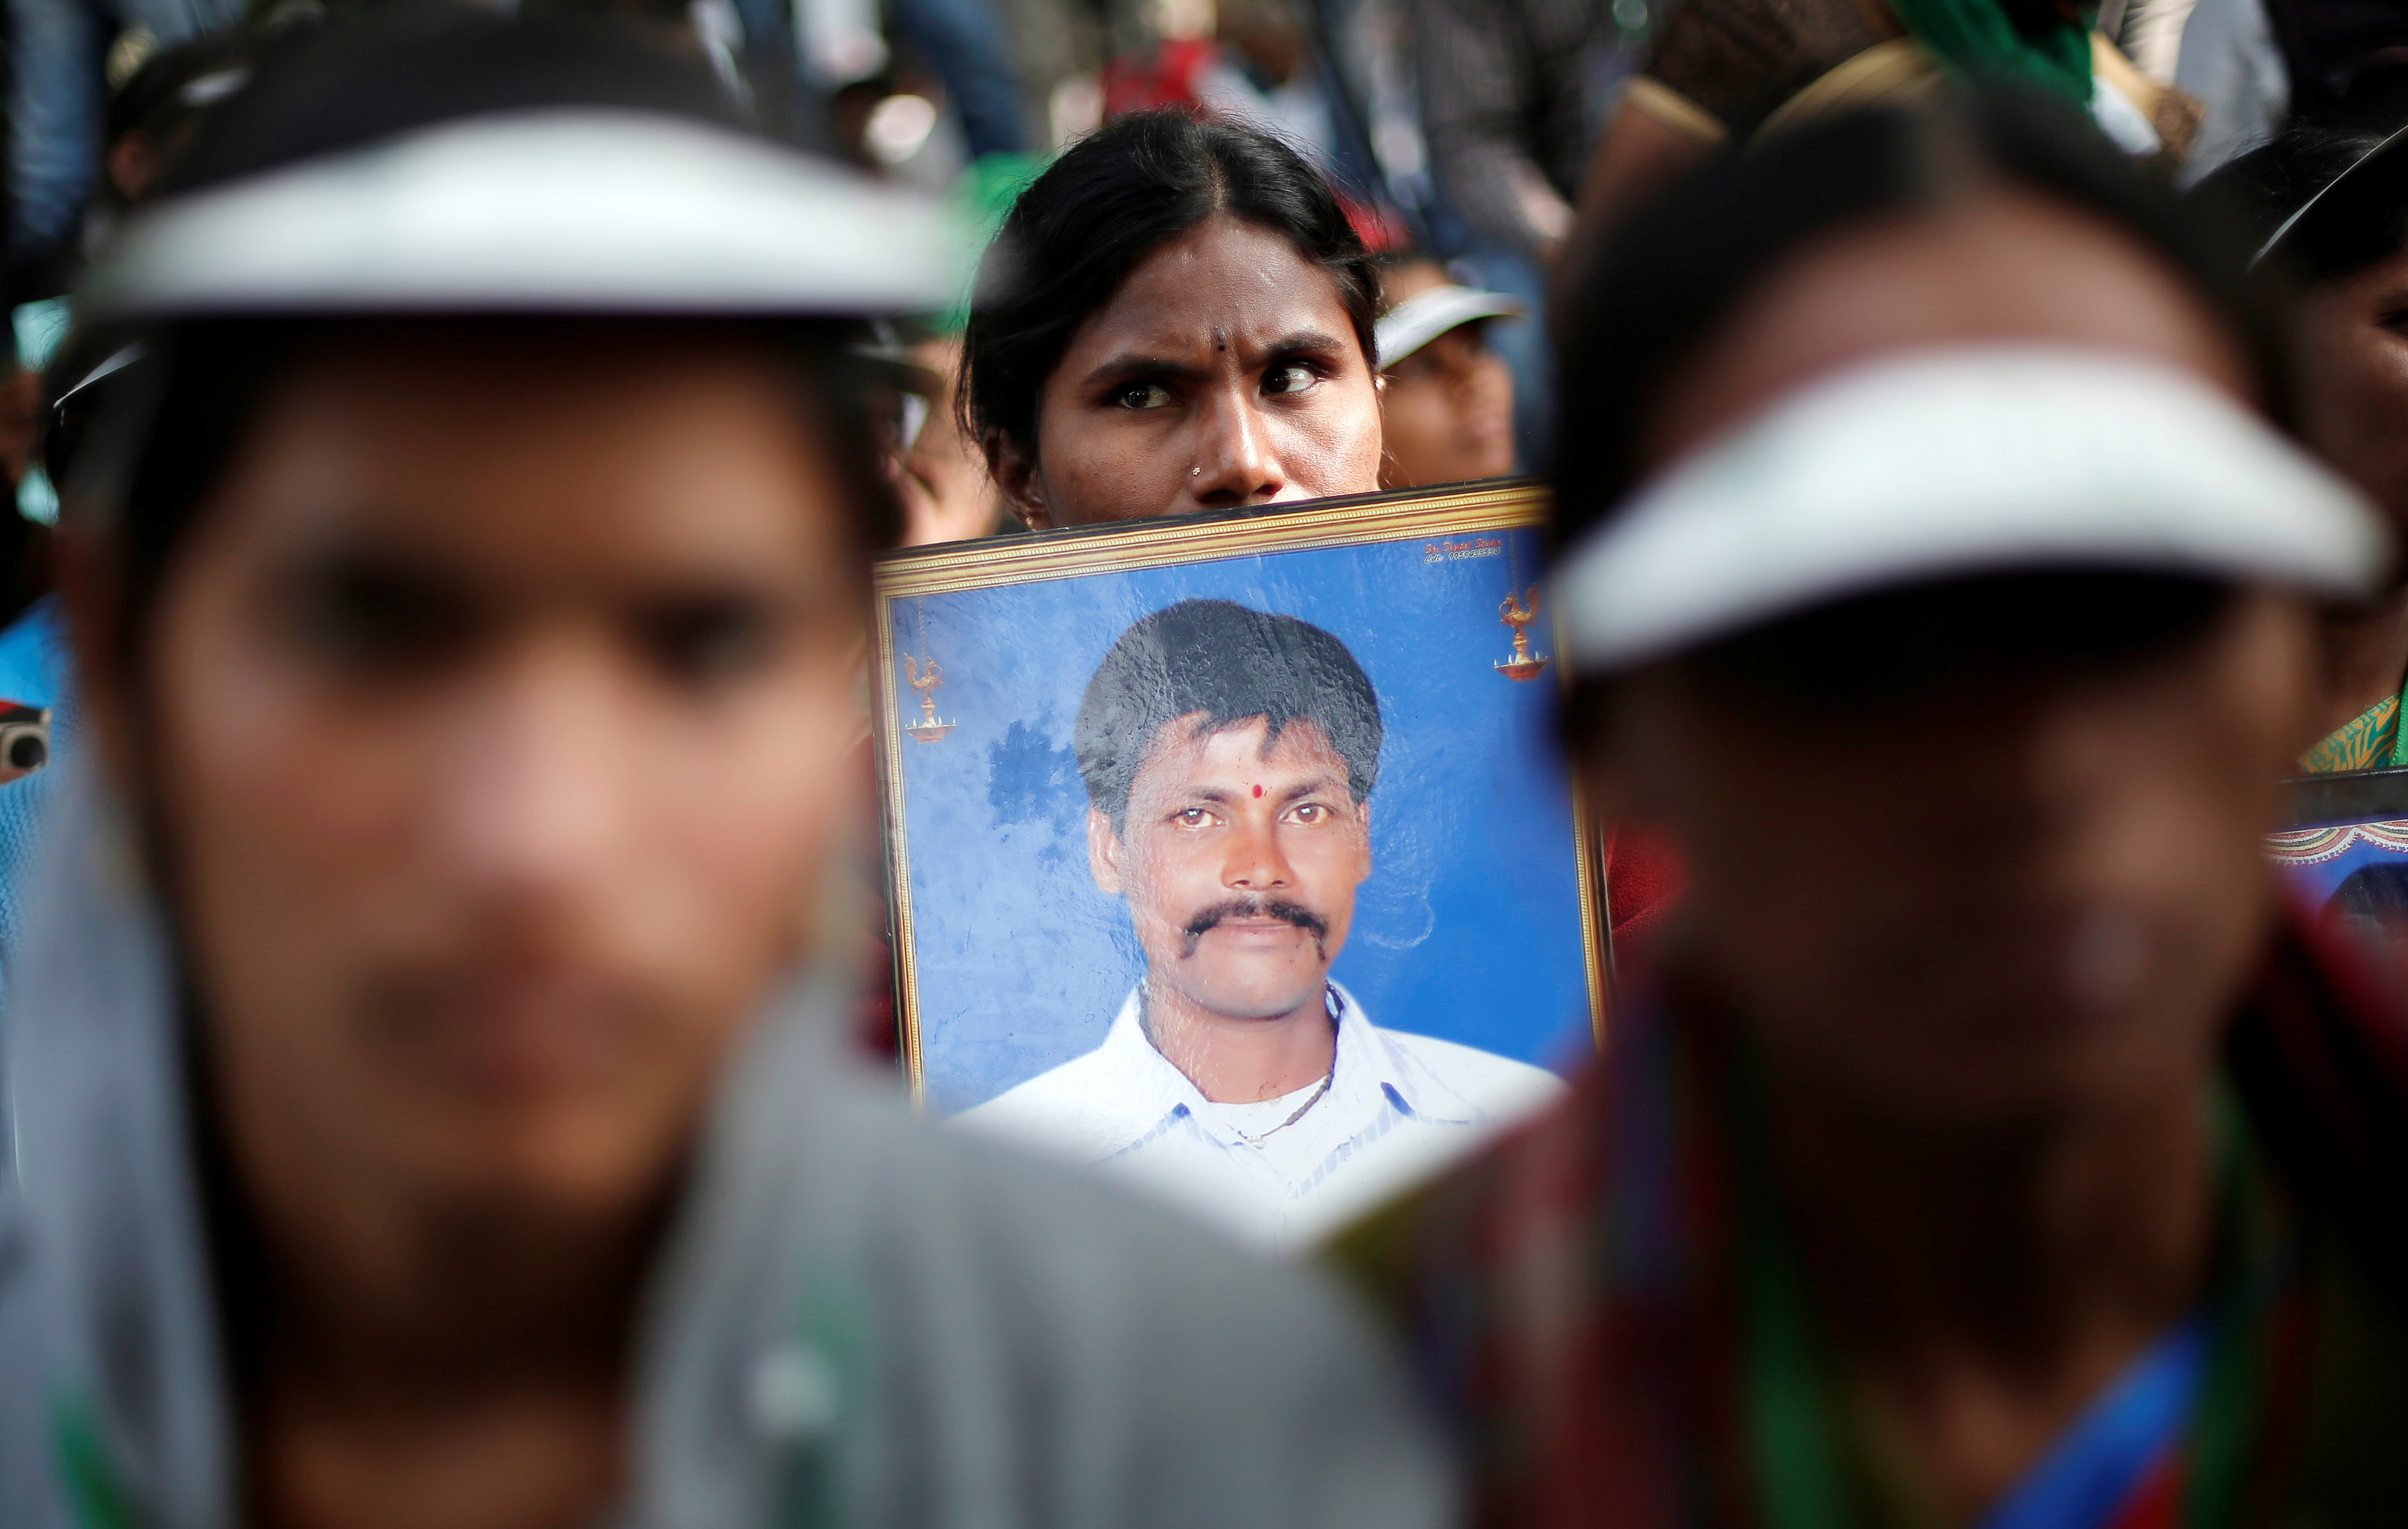 A farmer from Telangana holds a picture of her husband, who, she says, committed suicide, during a protest in Delhi. Photo credit: Reuters